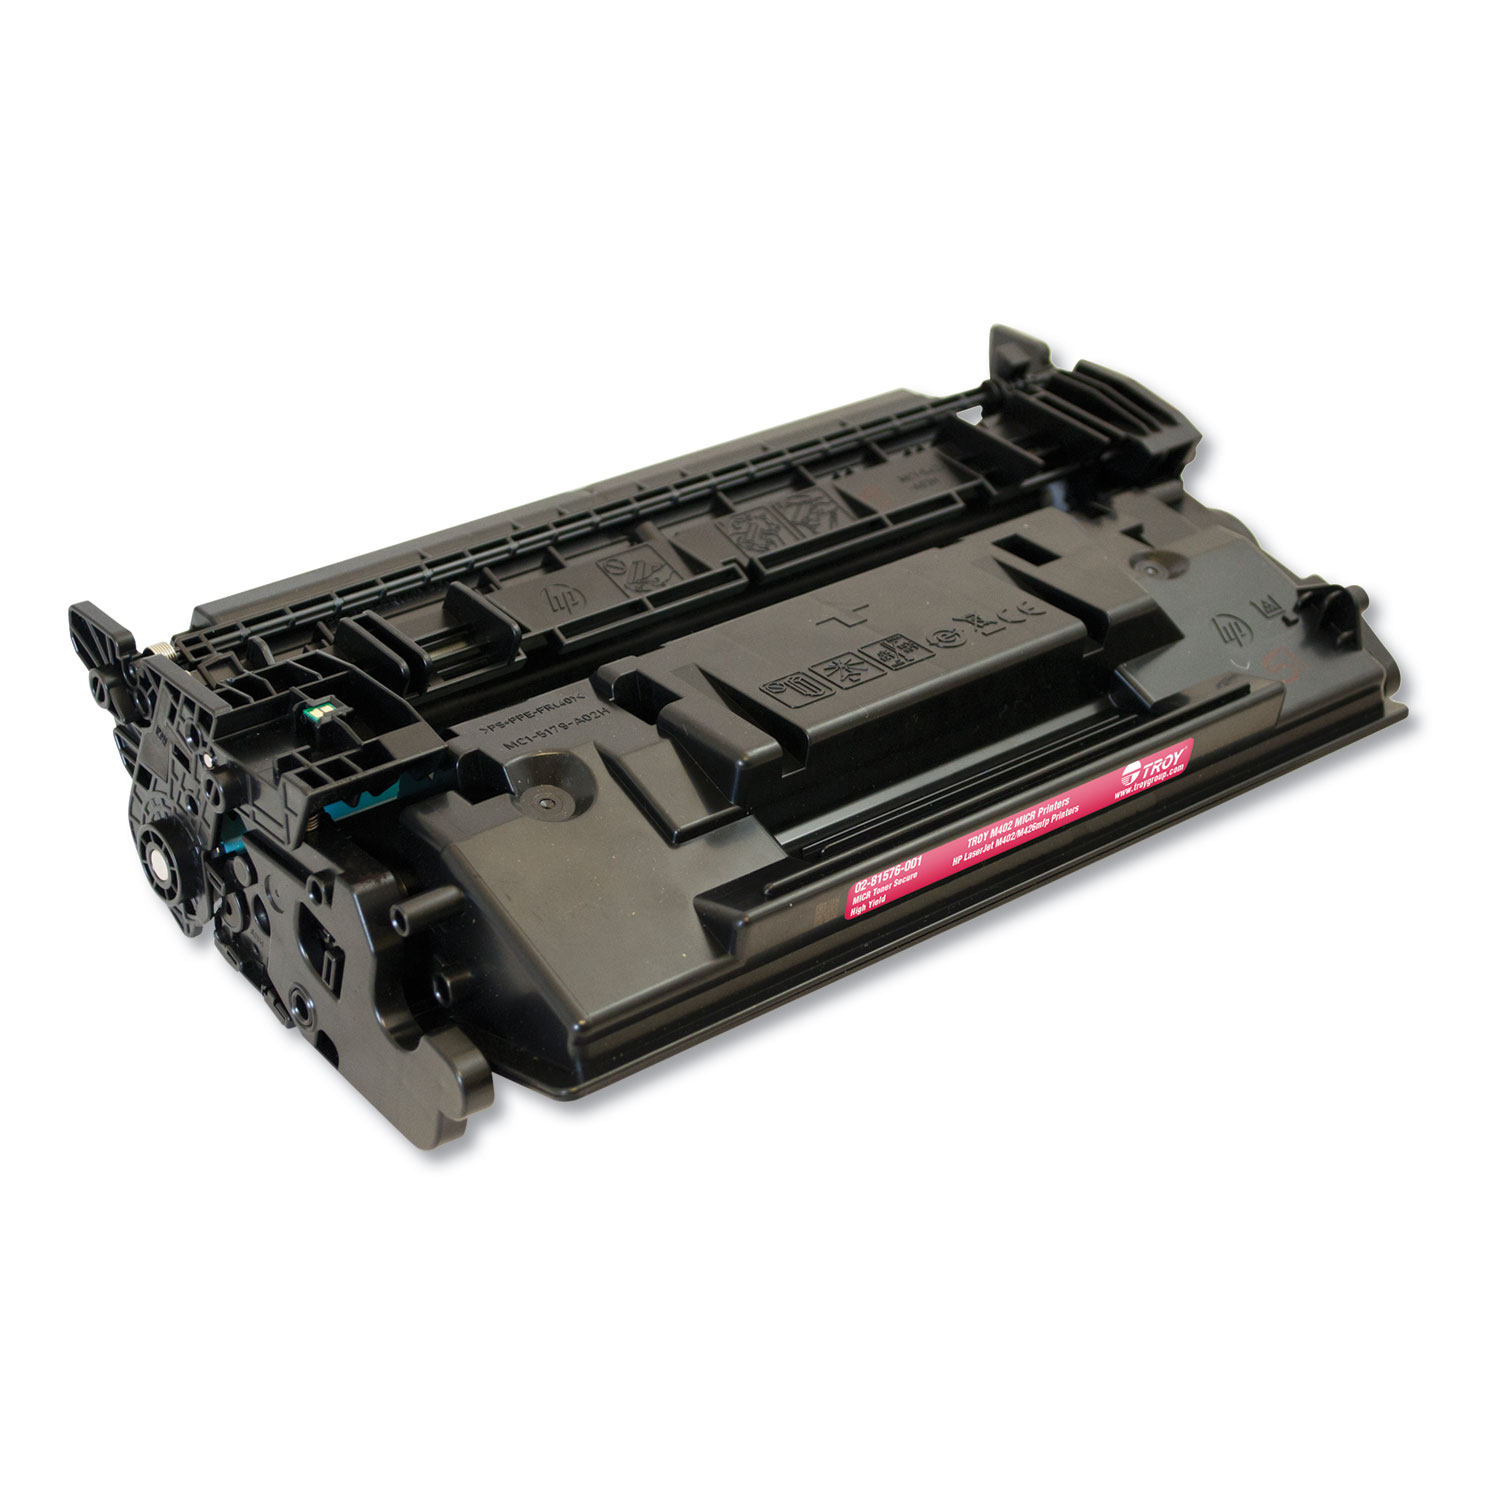 281576001 26X High-Yield MICR Toner Secure, Alternative for HP CF226X, Black